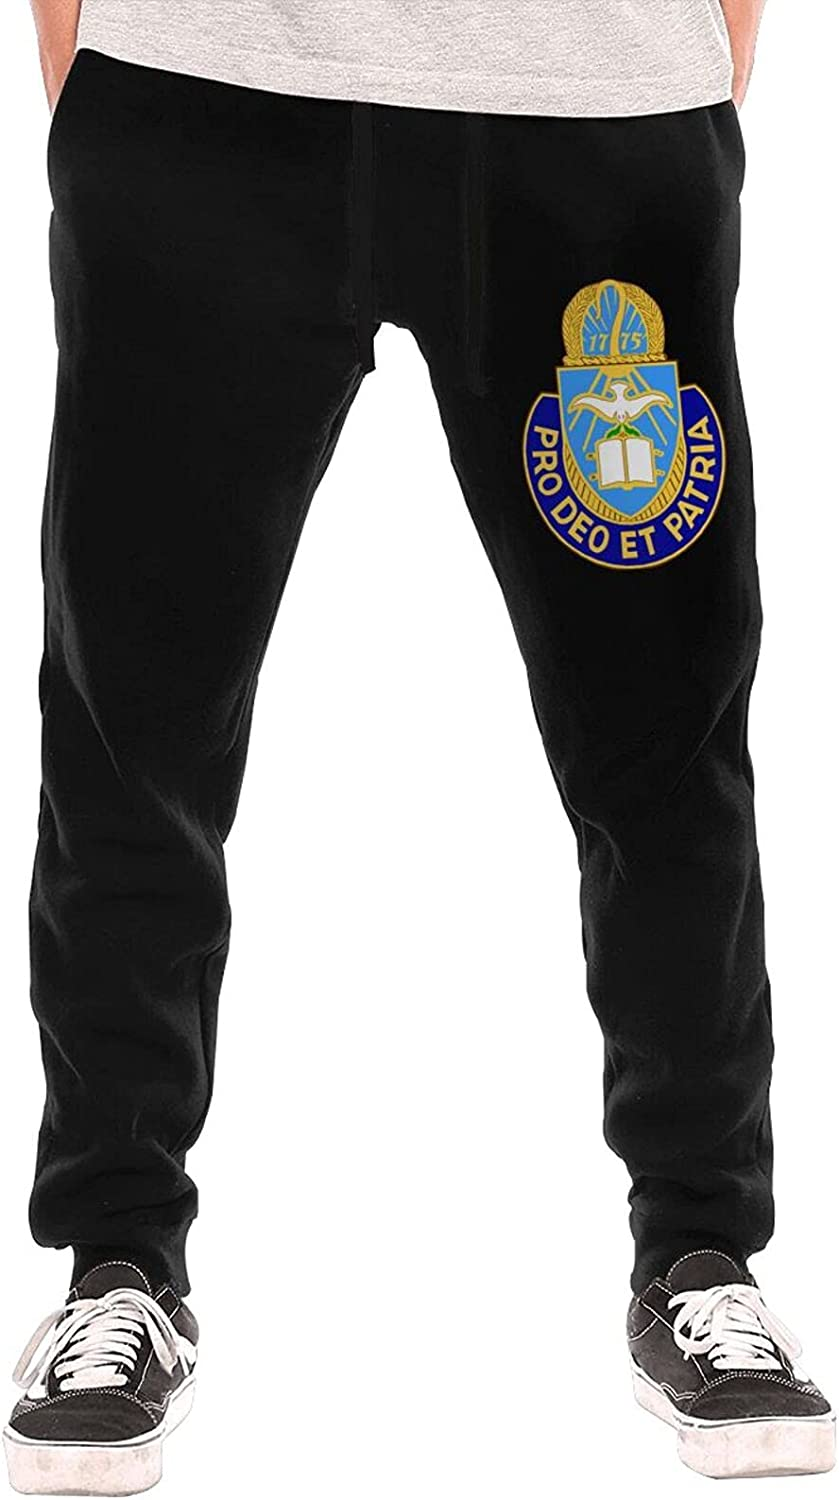 Constantyou Us Army Chaplains Sweatpants Man Jo Recommended Jogger Pants for Max 76% OFF